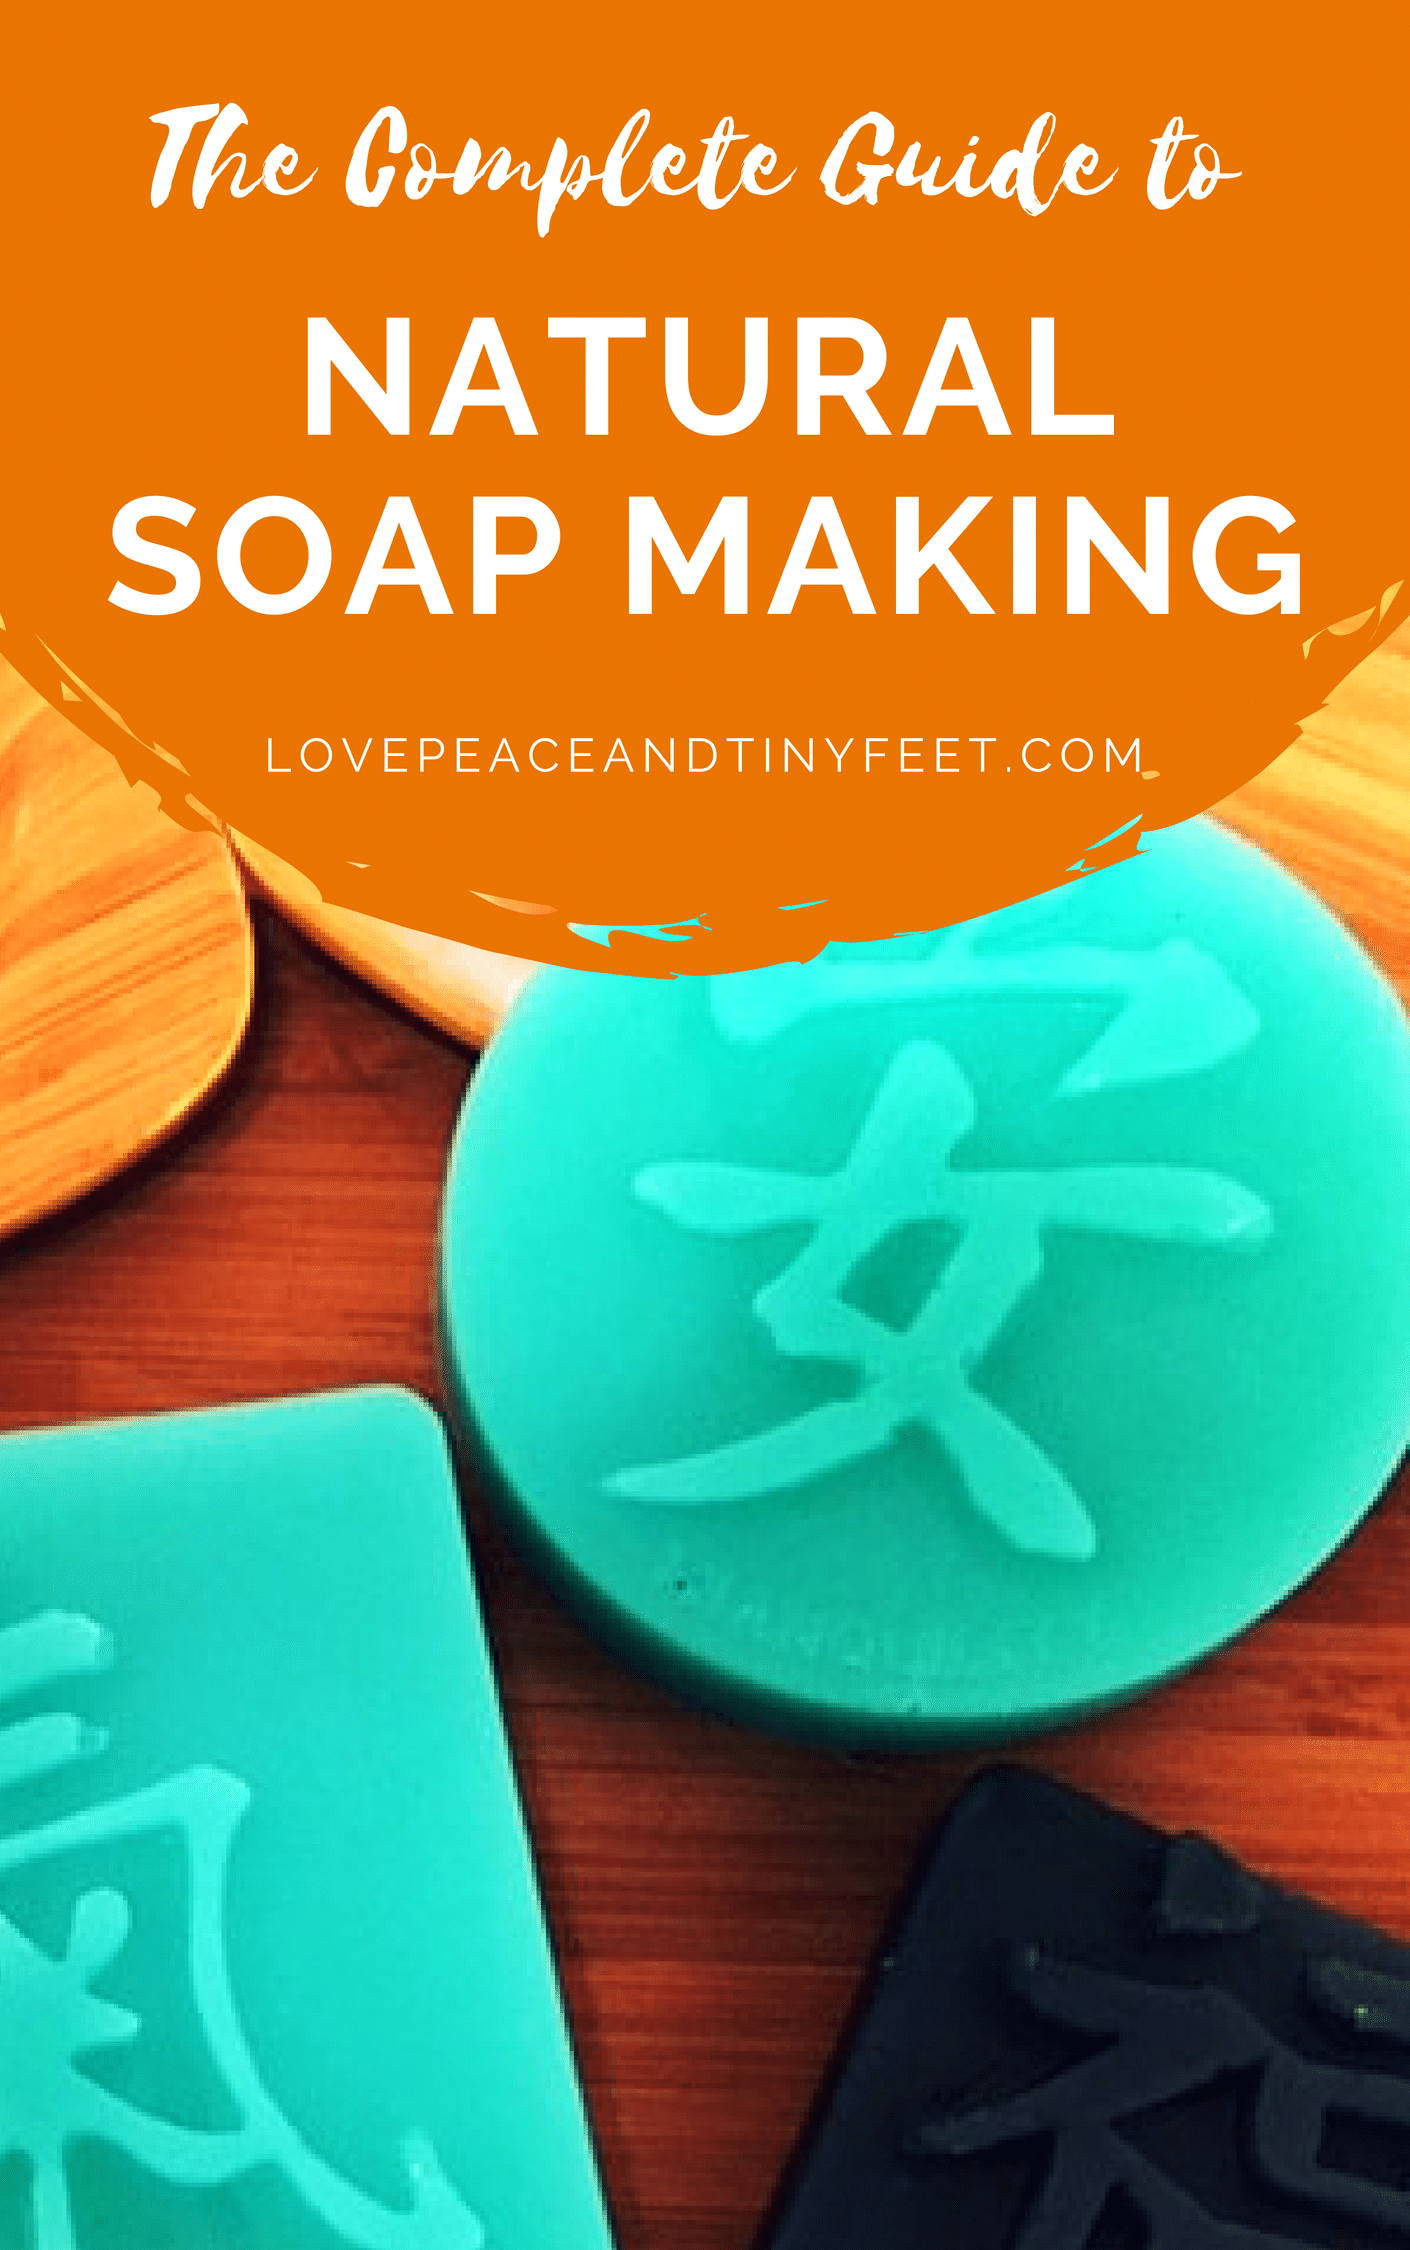 Ever wondered how to make your own soap? Everything you need to get started with natural soap making through the melt and pour and cold process, plus an easy natural soap recipe to try with kids.